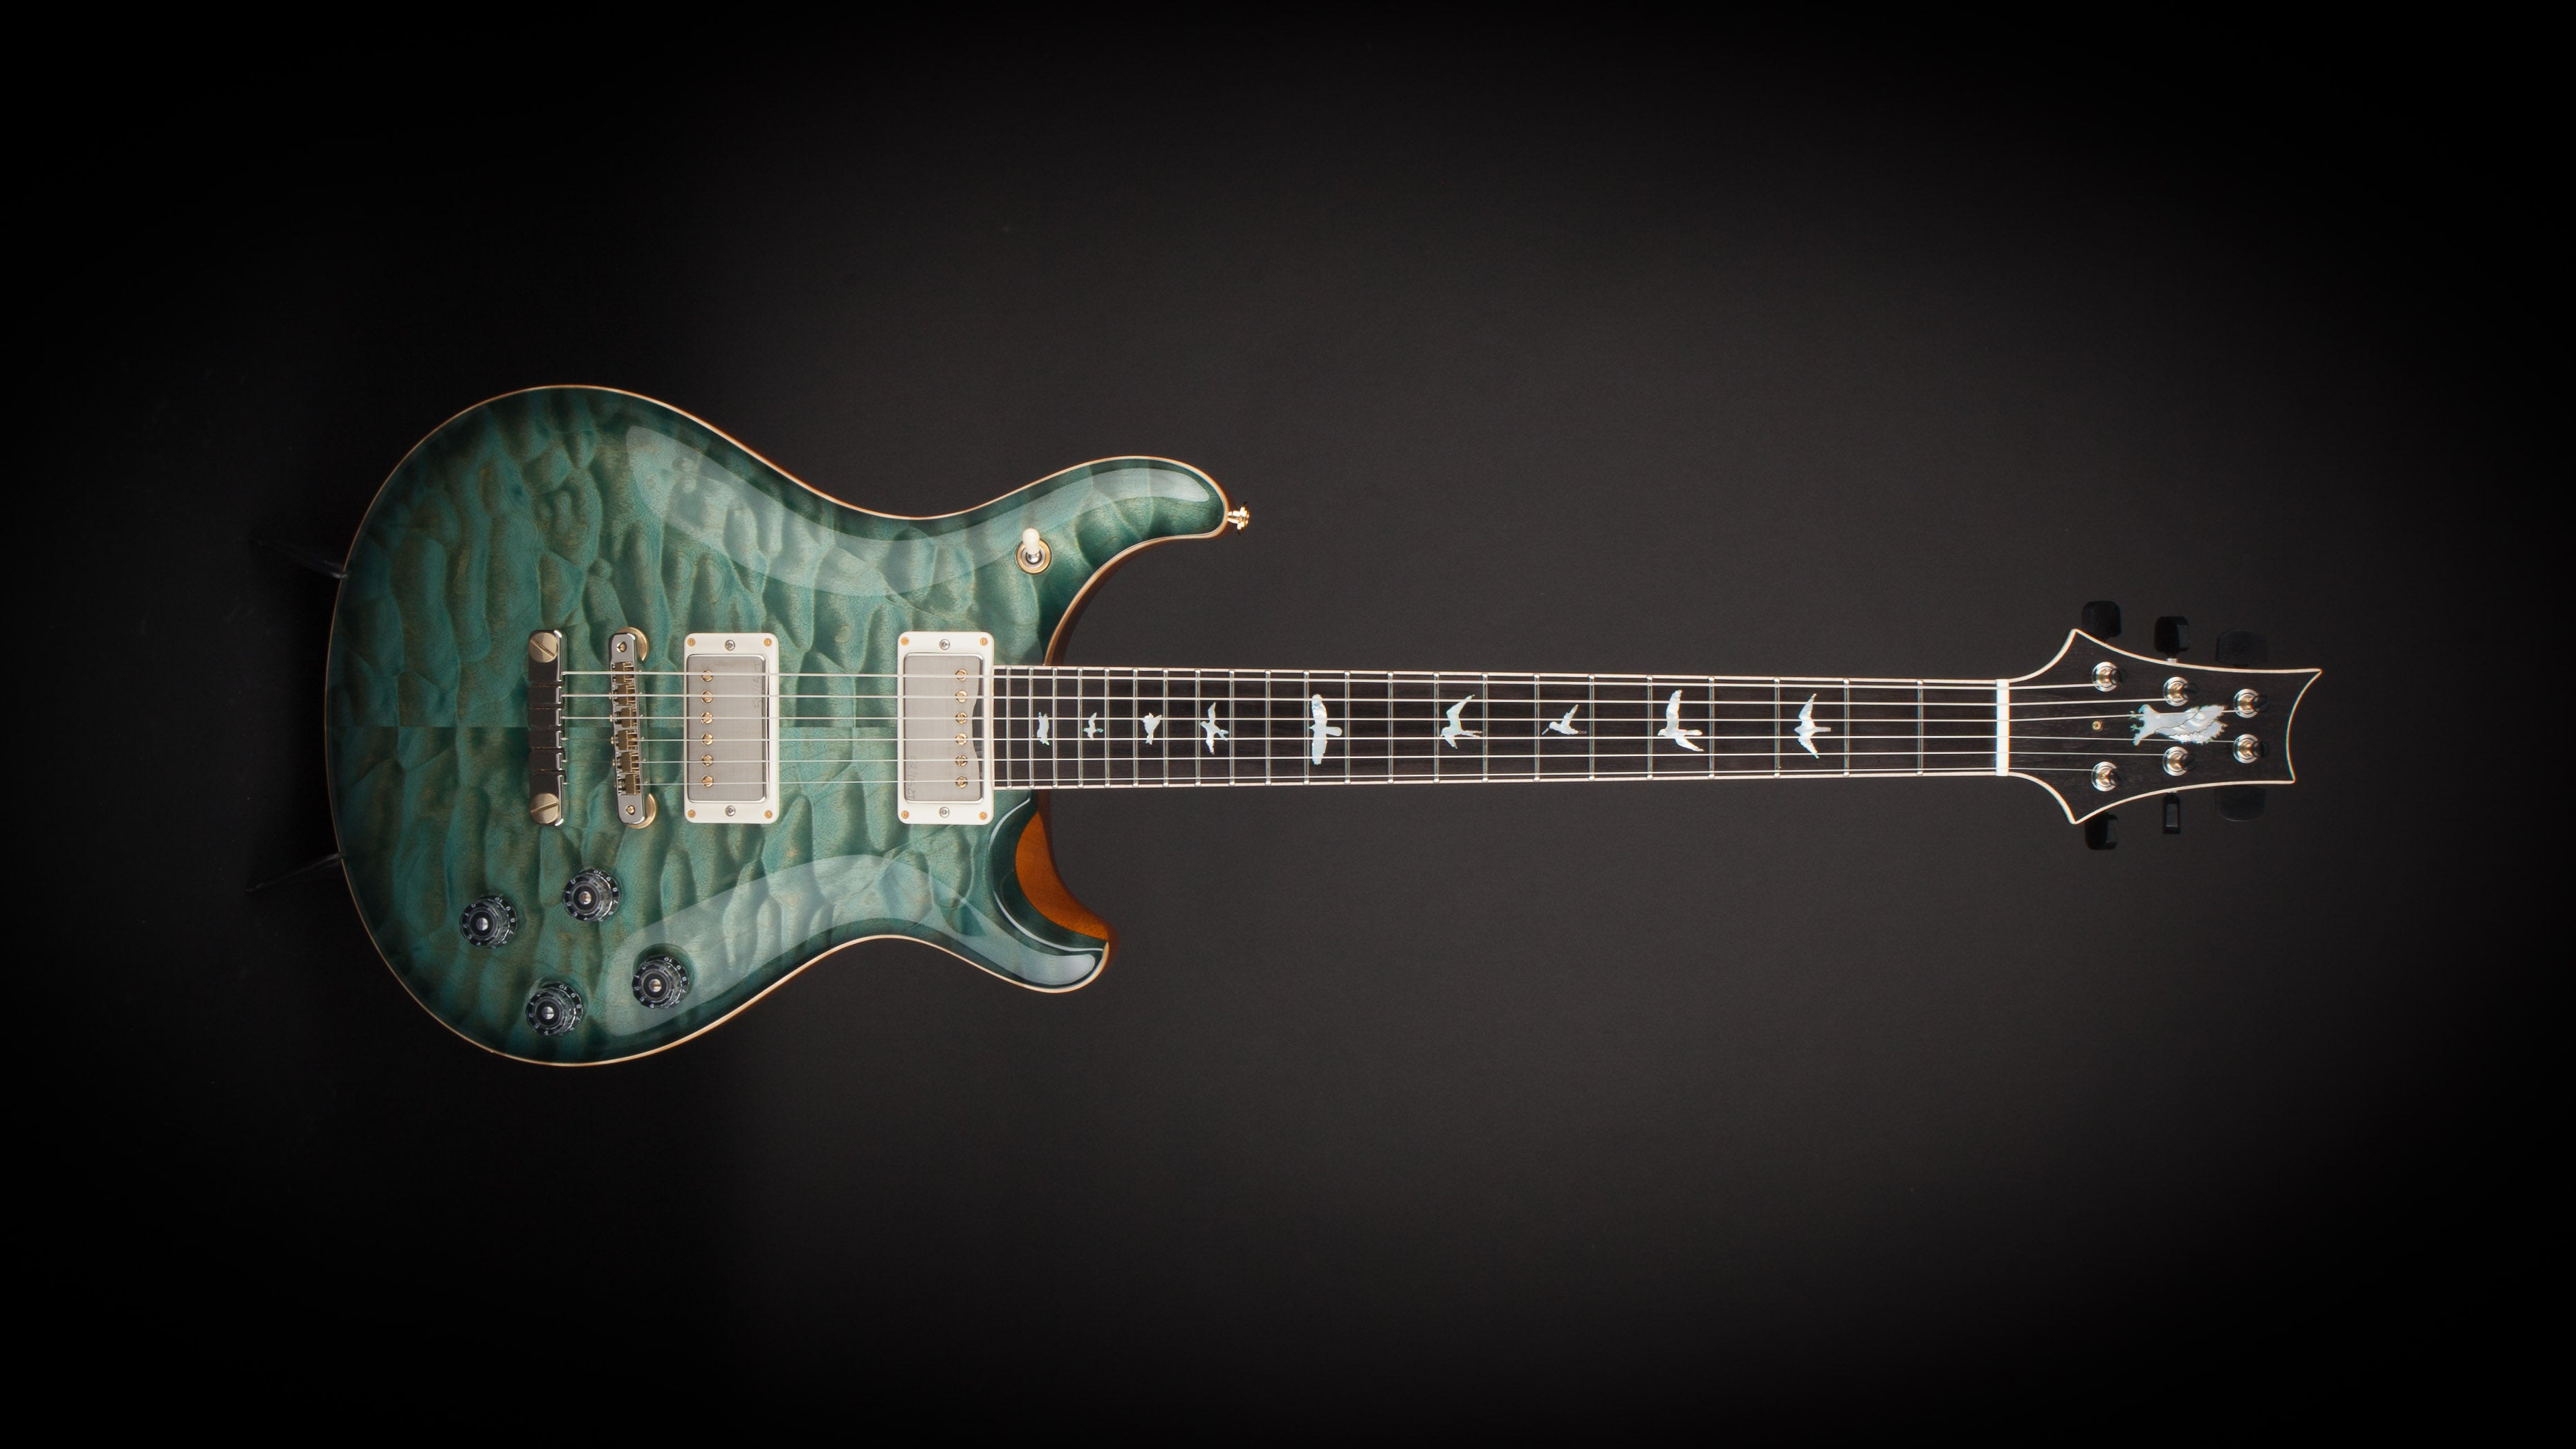 PRS Private Stock McCarty 594 'Periscope #7' Teal Nightshade #6403